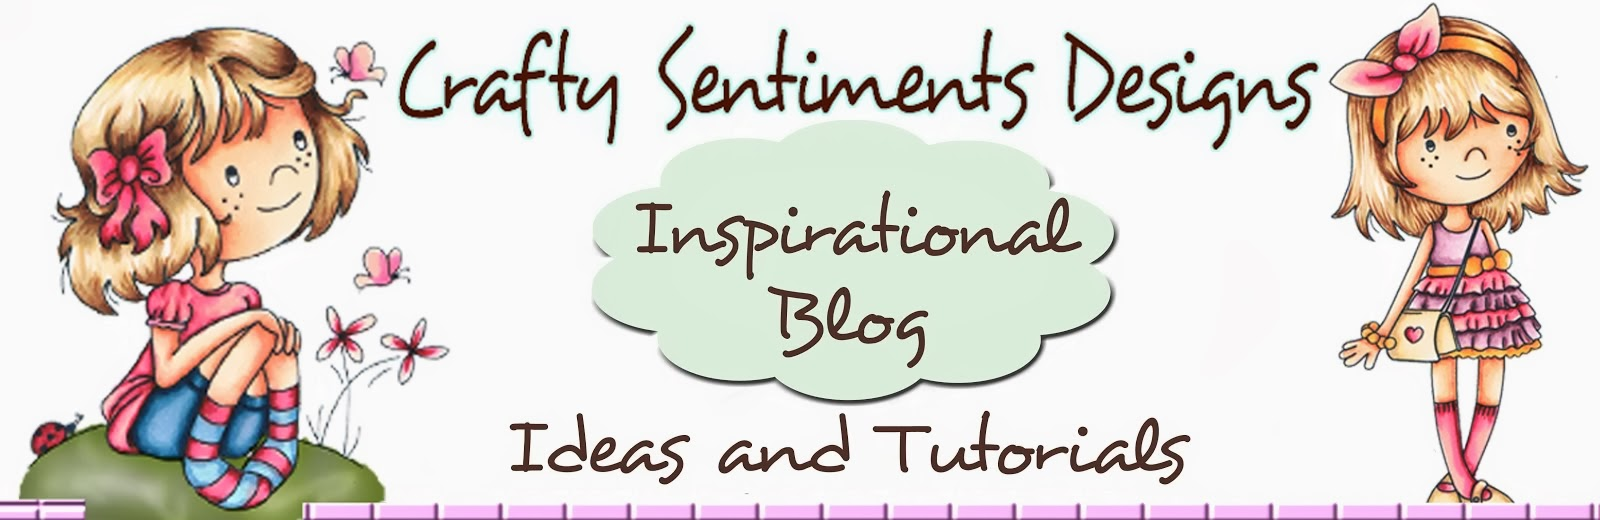 Crafty Sentiments Designs 'Crafty Inspirations'